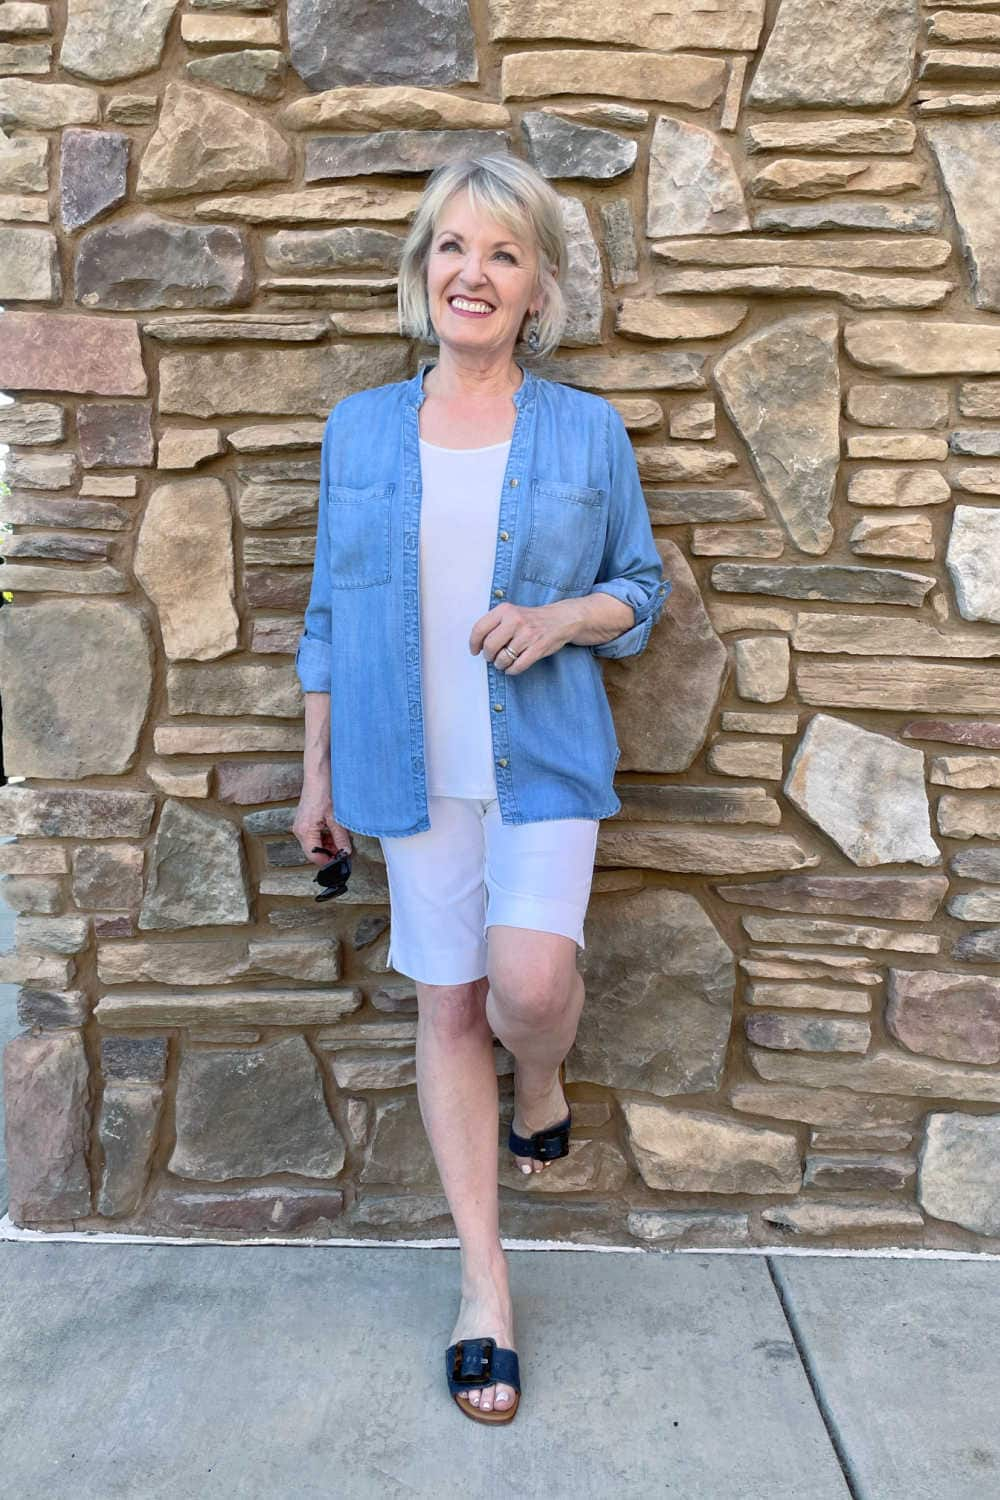 woman leaning against wall wearing denim top and stretch shorts